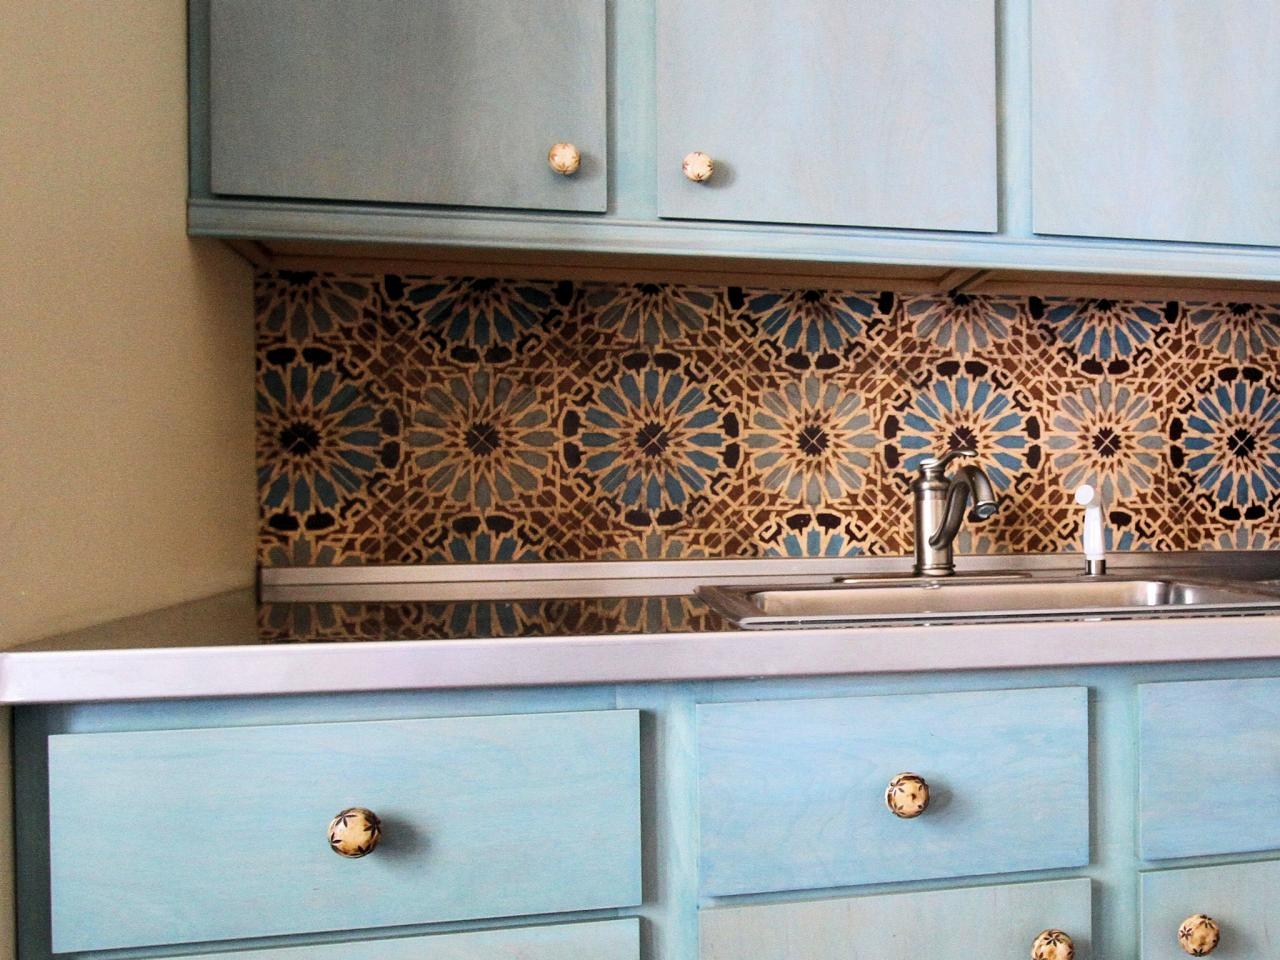 Kitchen Tiles Design Ideas kitchen tile backsplash ideas: pictures & tips from hgtv | hgtv